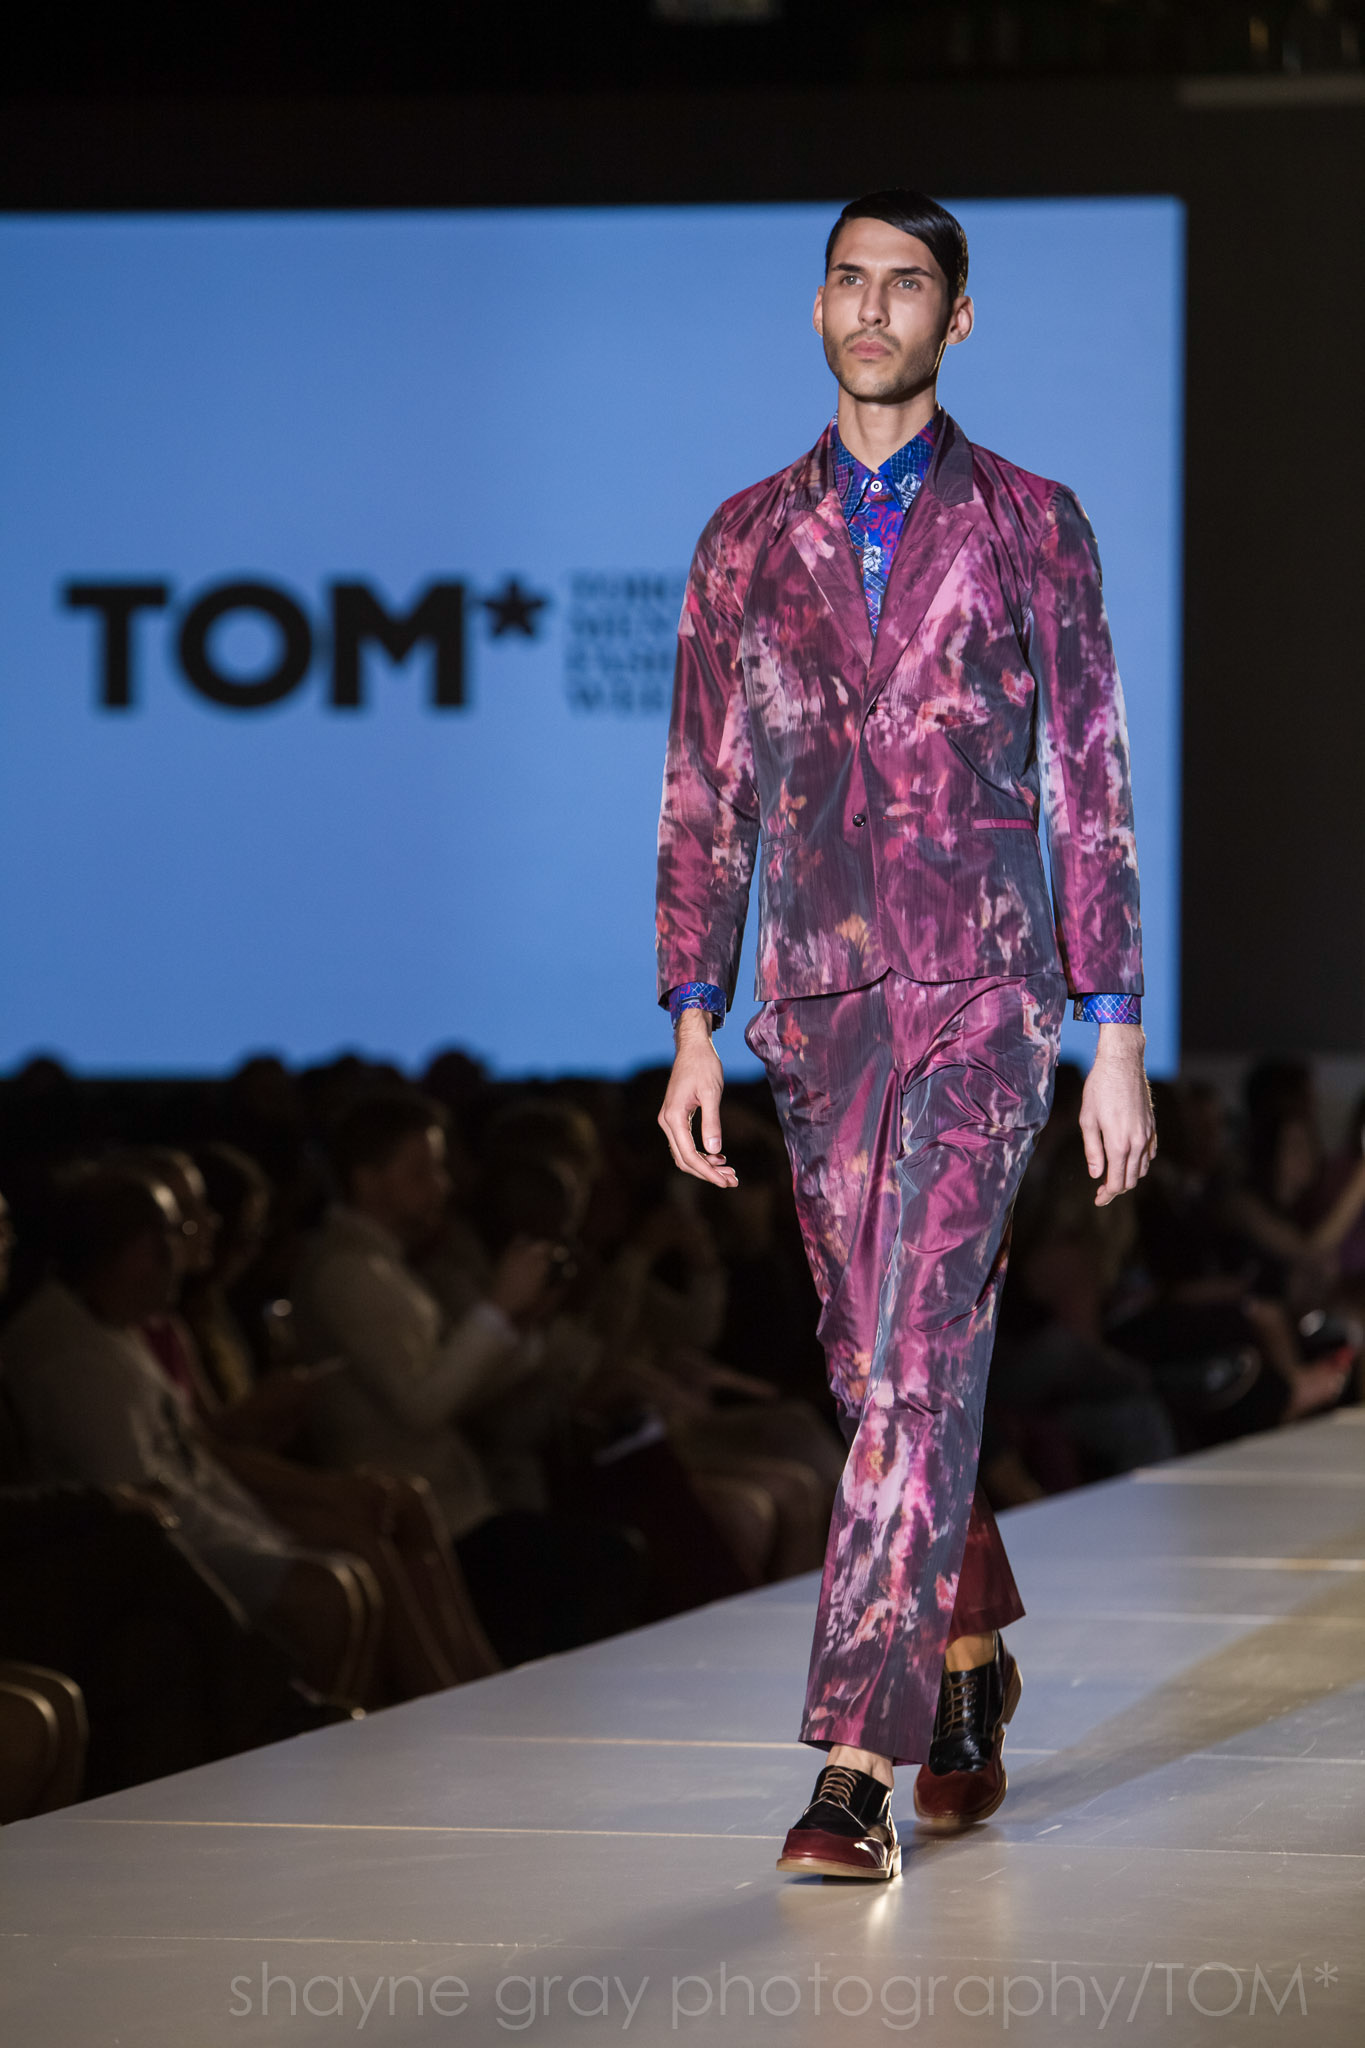 Shayne-Gray-Toronto-men's-fashion_week-TOM-paul-nathaphol-7952.jpg